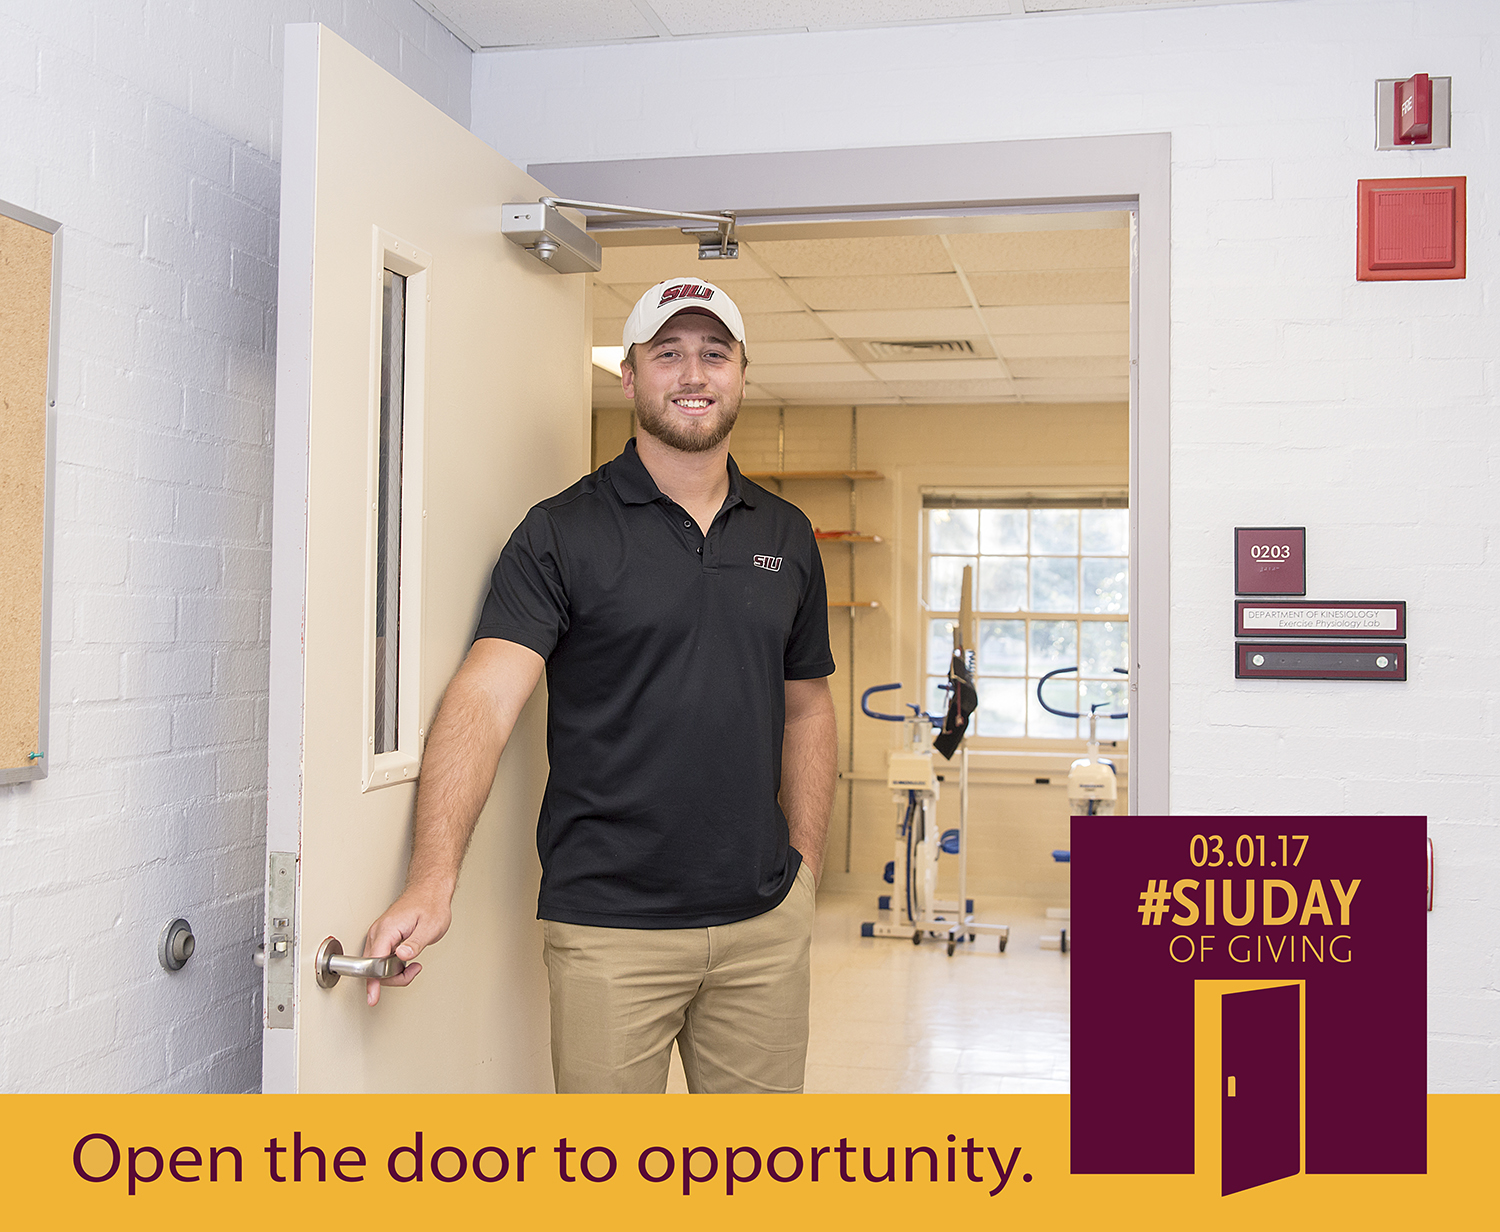 SIU Day of Giving – Open the door to opportunity at SIU College of Education and Human Services